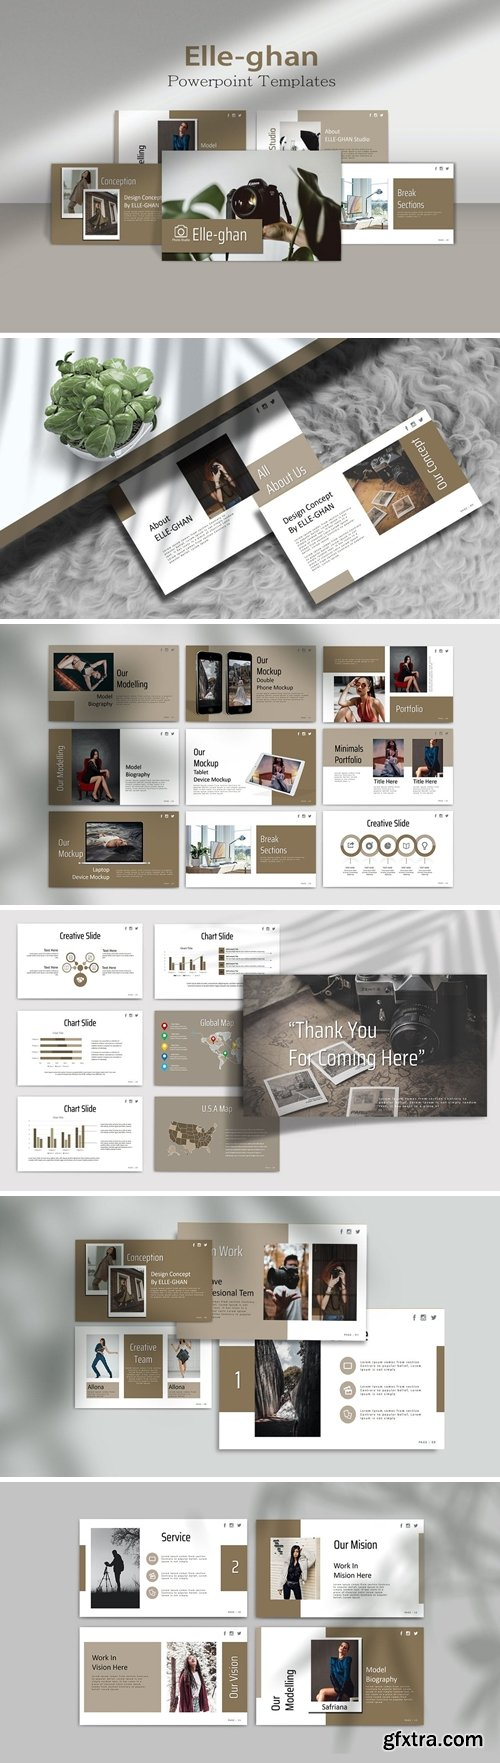 ELLE-GHAN - Photography Powerpoint, Keynote and Google Slides Templates